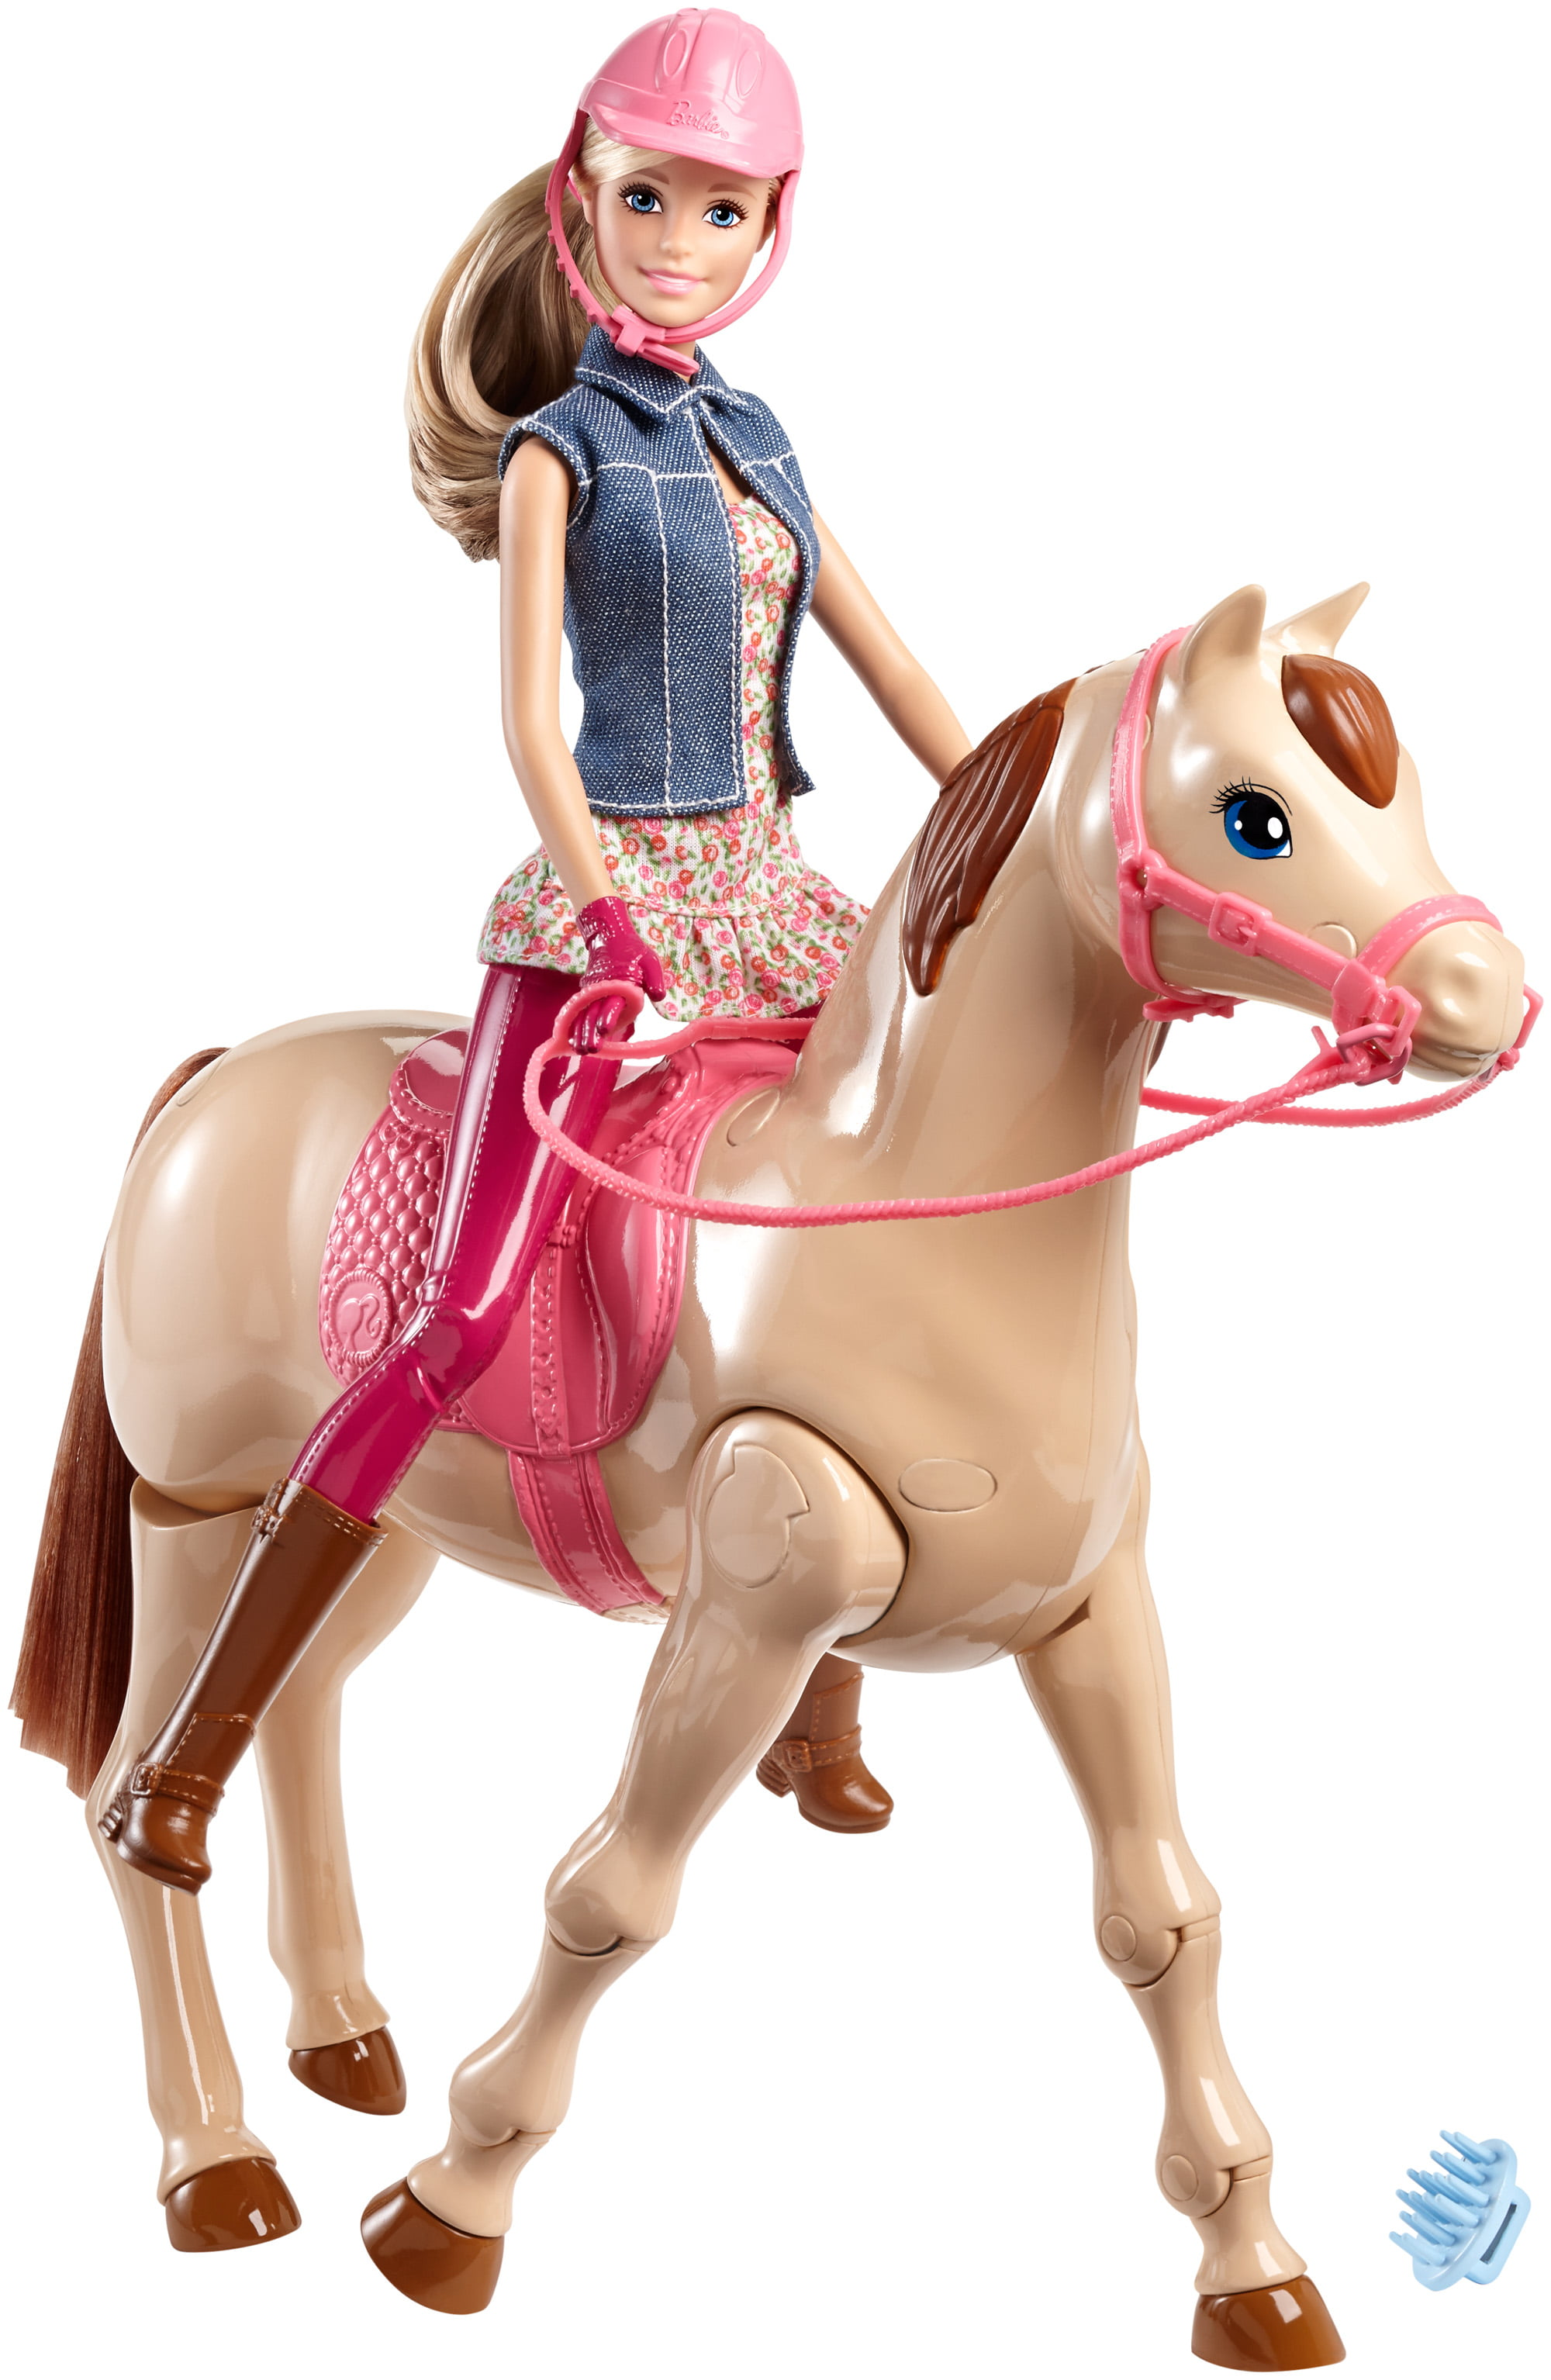 Barbie Saddle N Ride Horse by MATTEL INC.